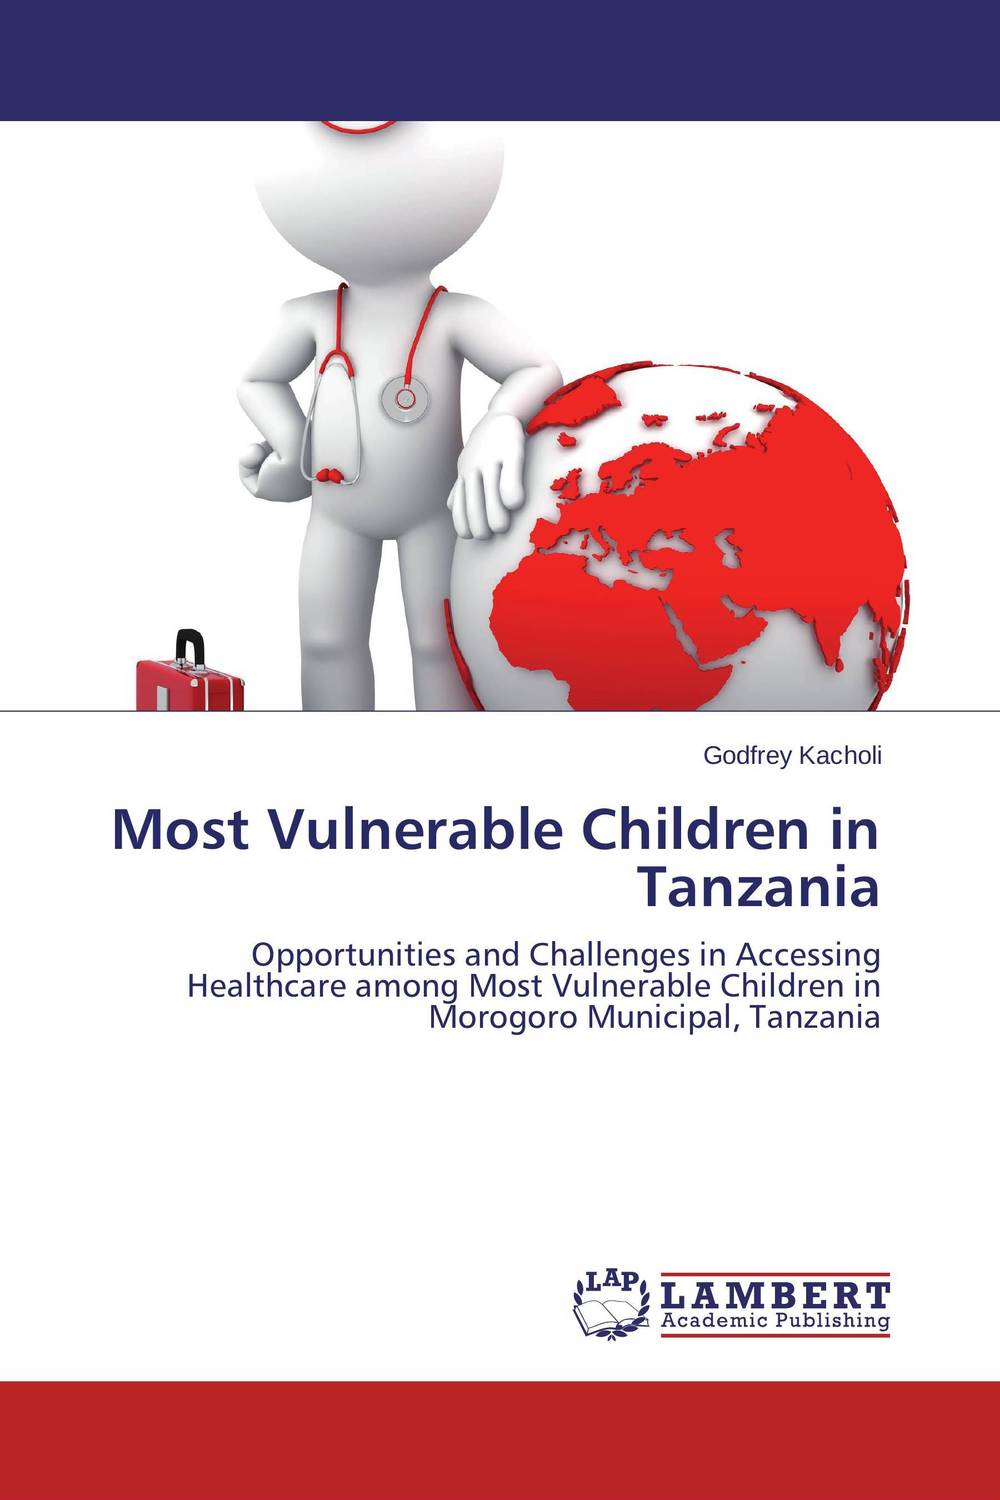 Most Vulnerable Children in Tanzania education of vulnerable children